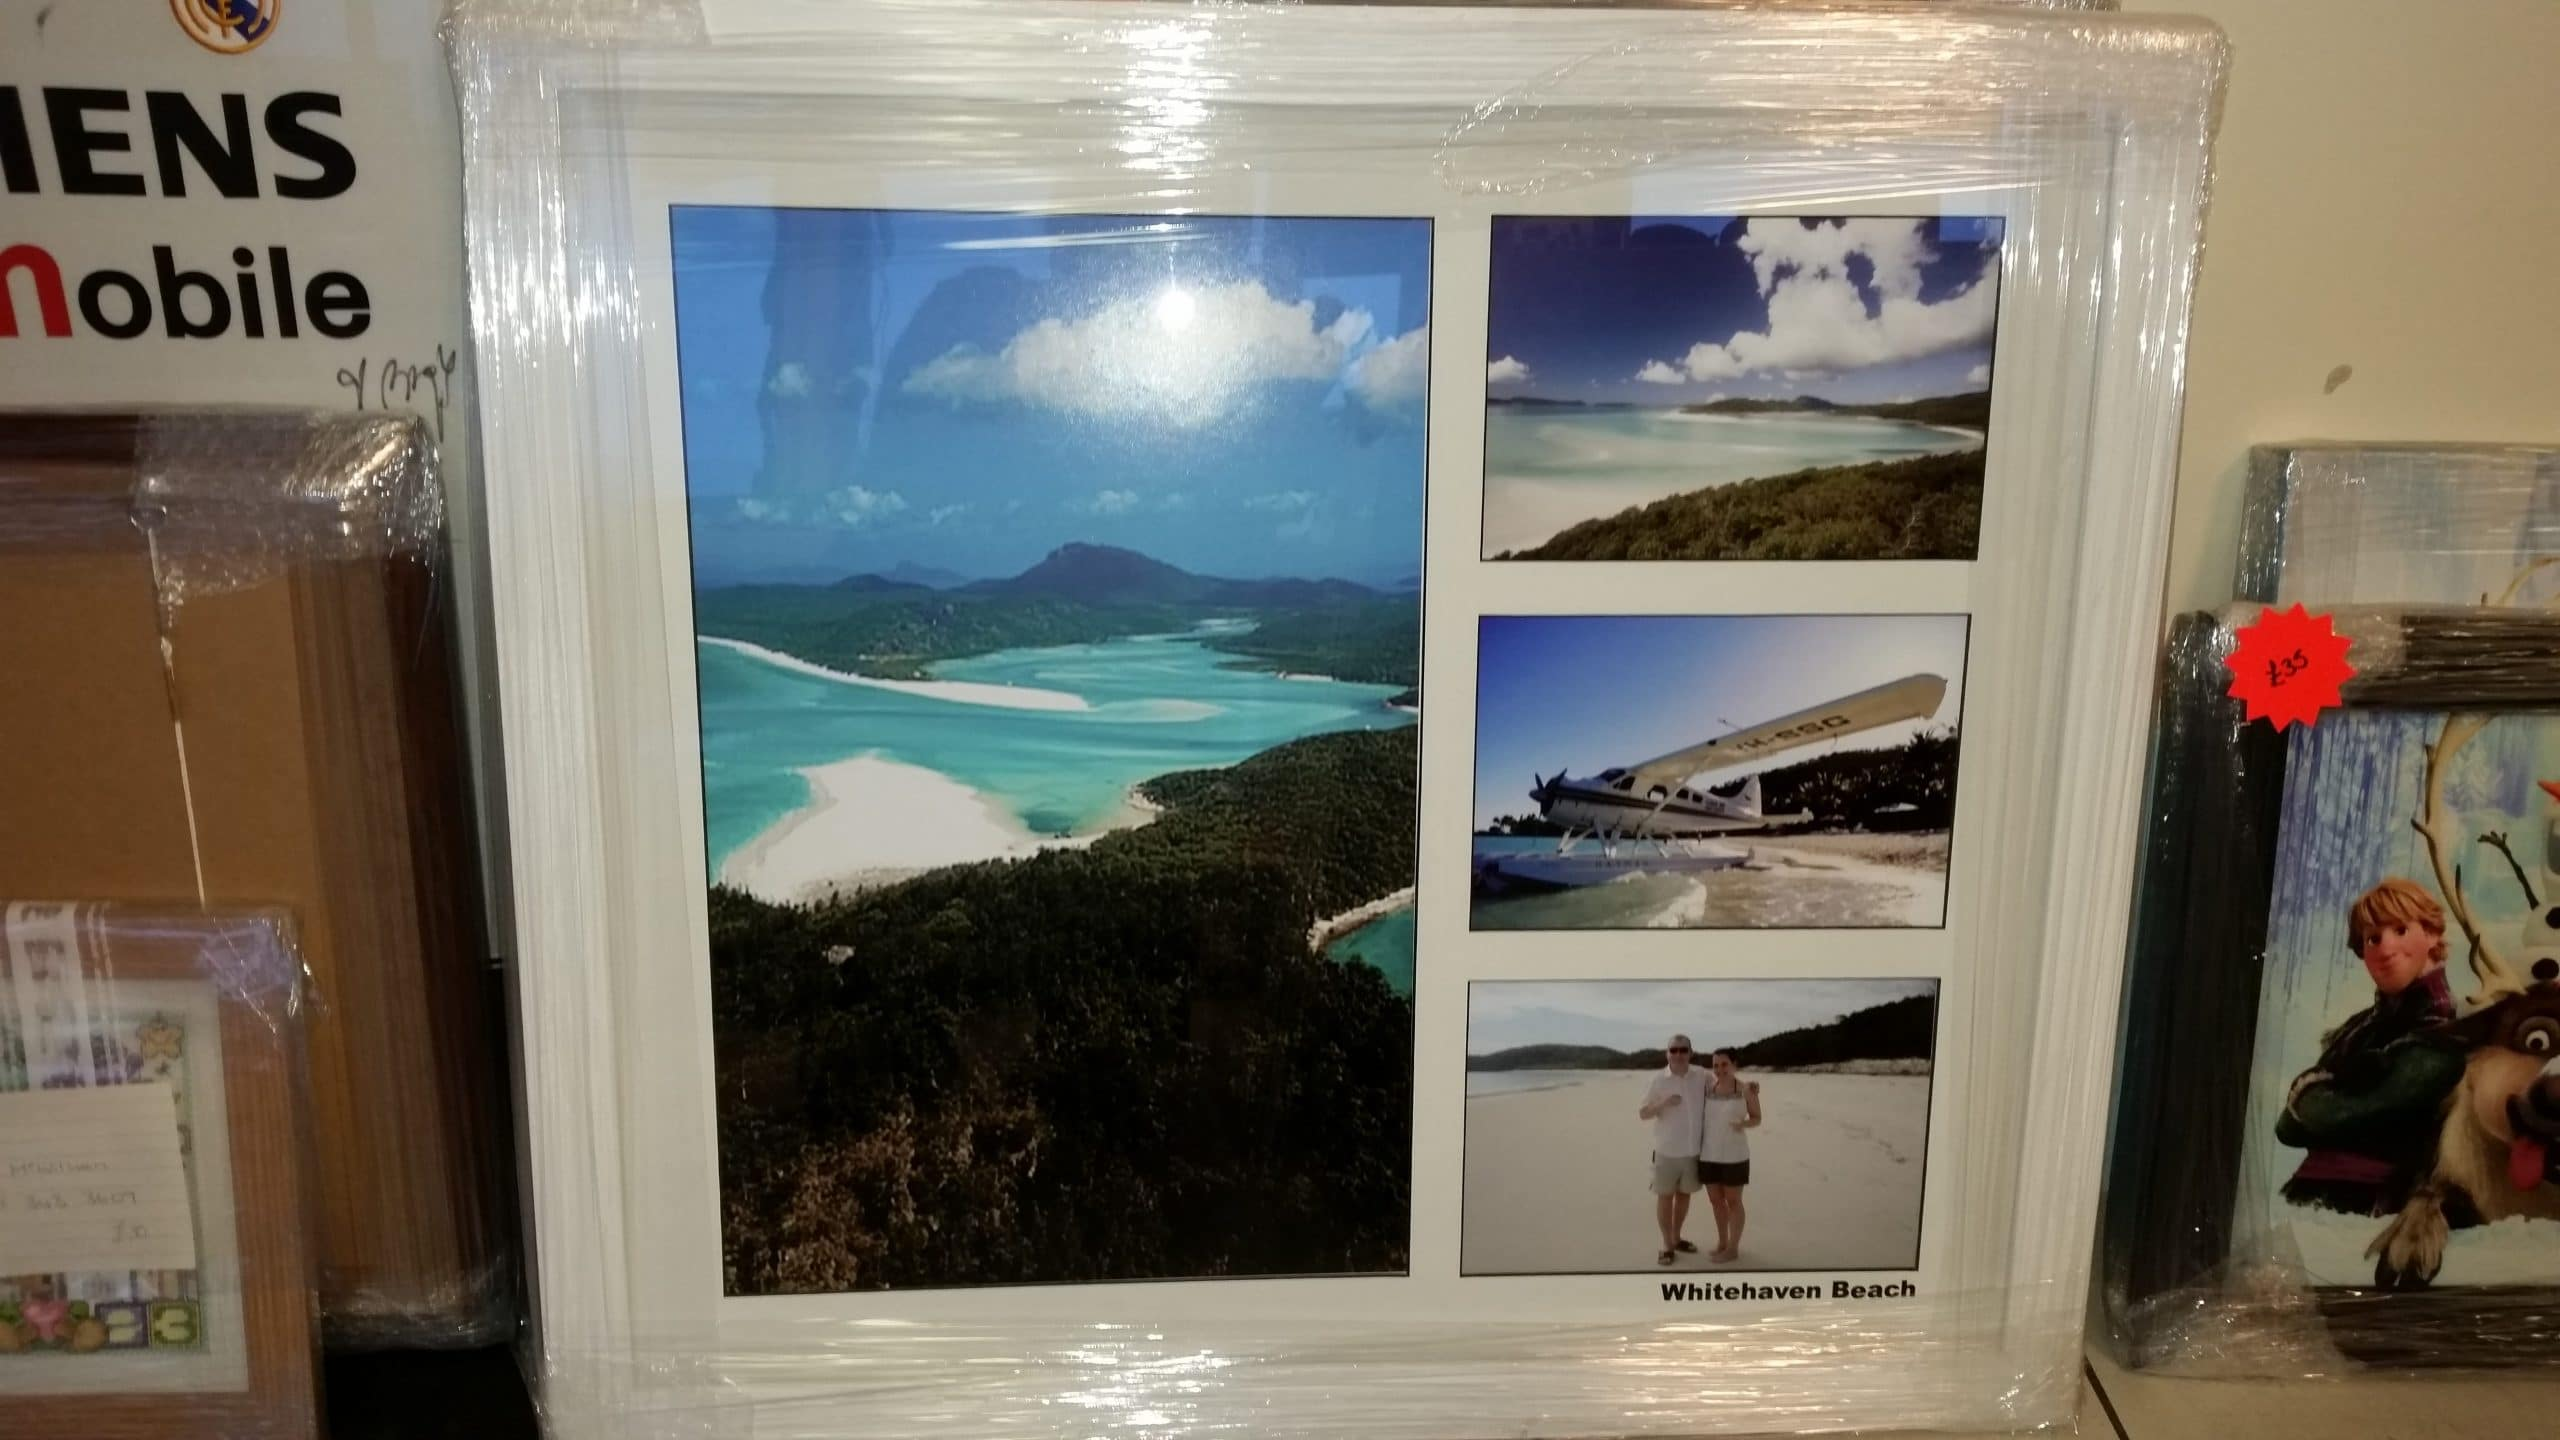 Whitehaven Beach, Australia Pictures Framed in White Moulding With Black Vinyl Lettering